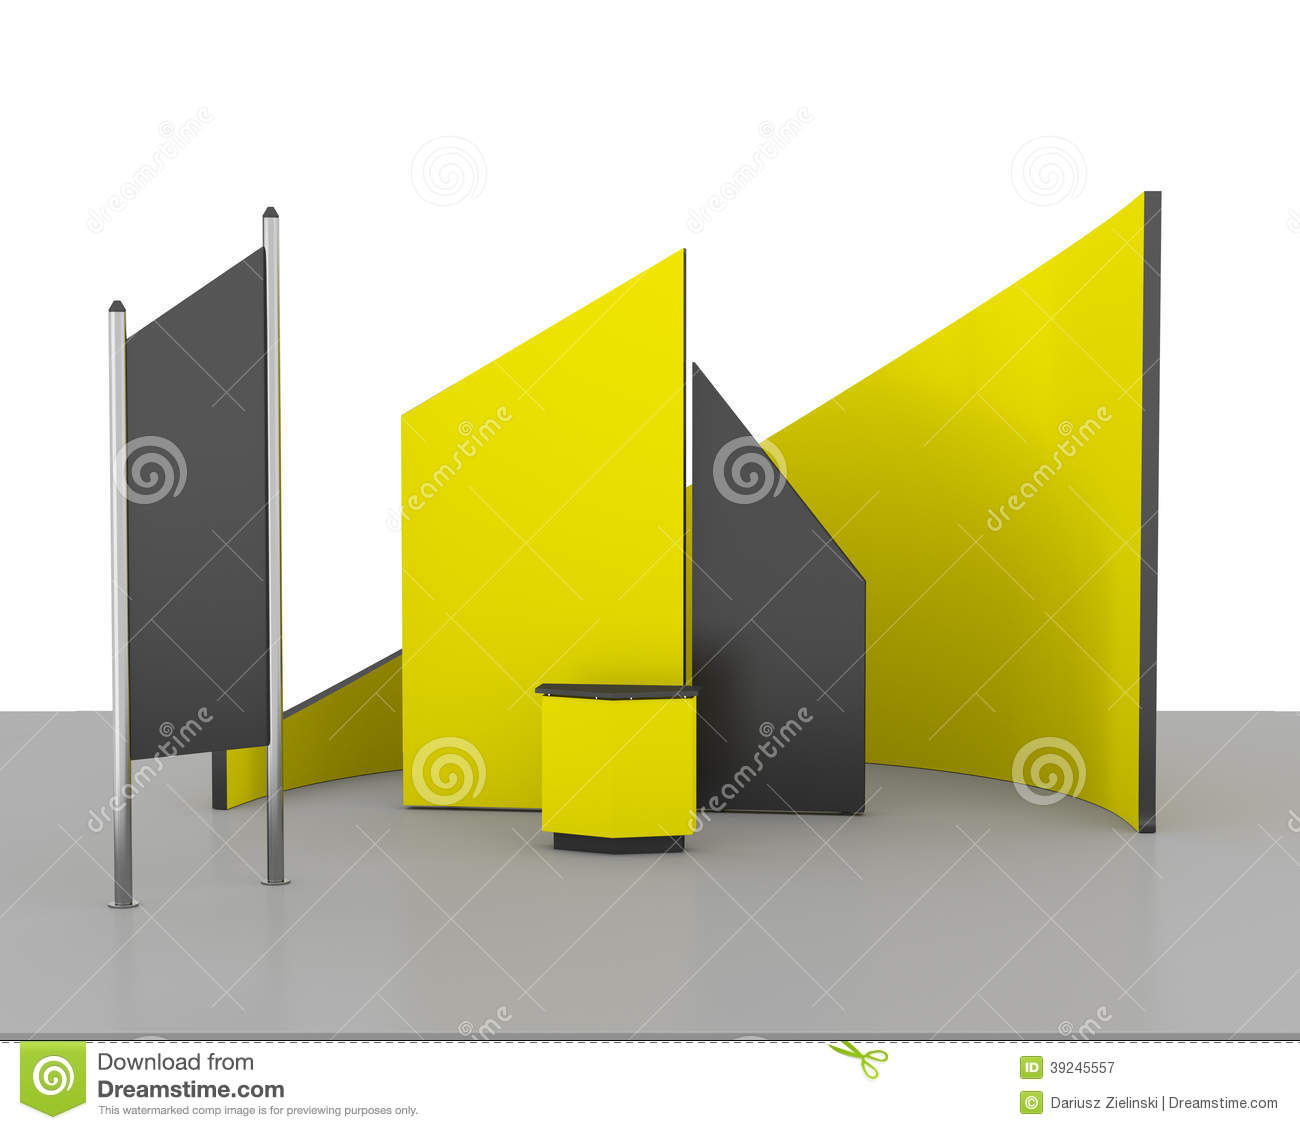 White Exhibition Stall : Yellow trade exhibition booth or stall stock illustration